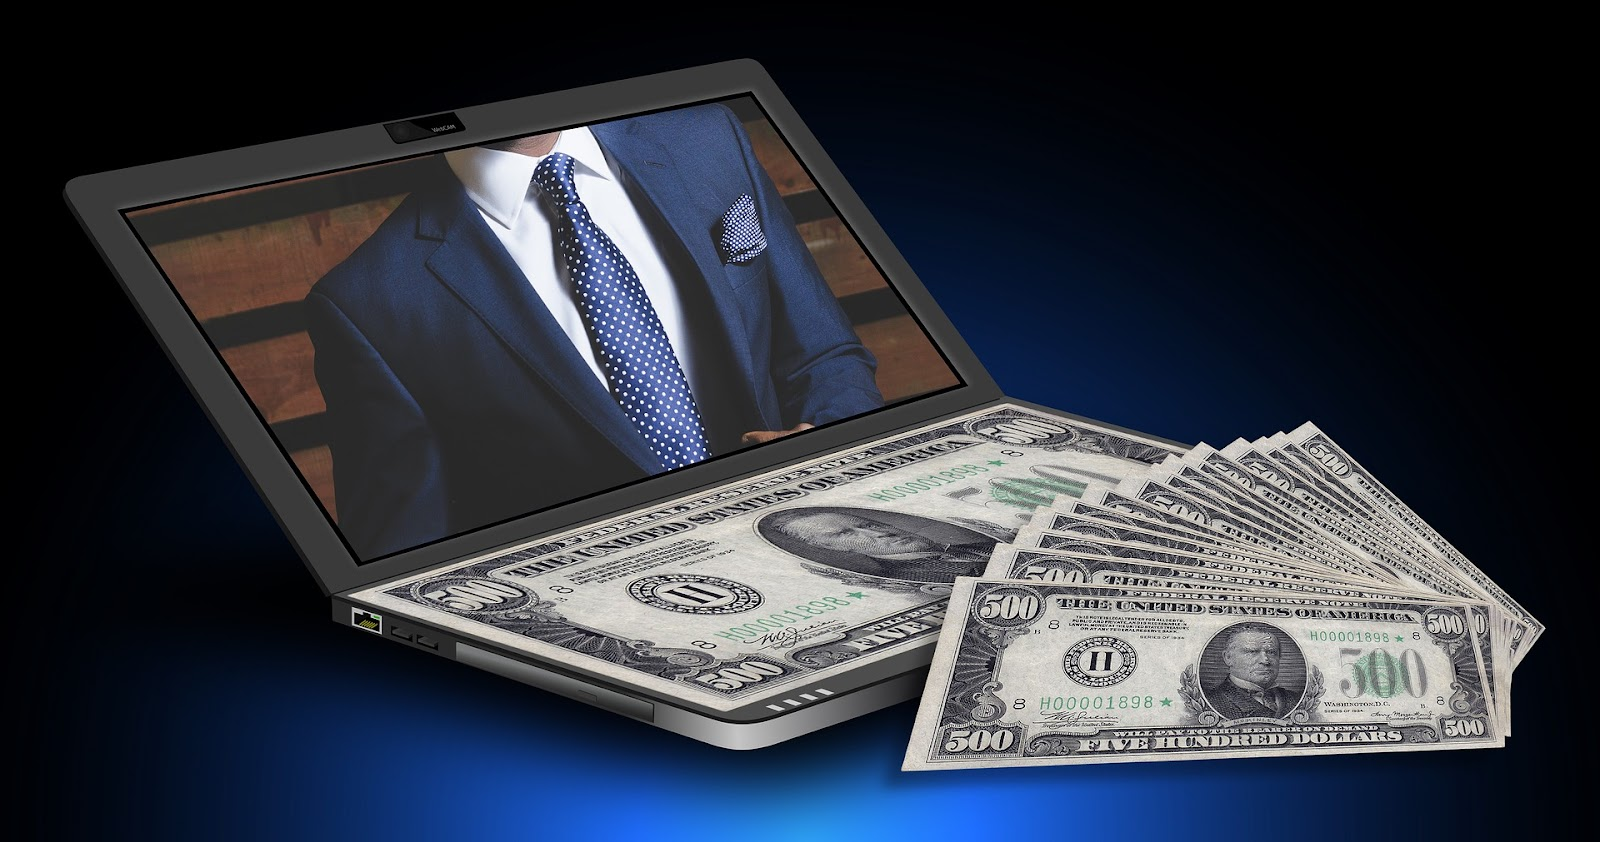 A Laptop with a picture of a lawyer on the screen, and a separate pile of money